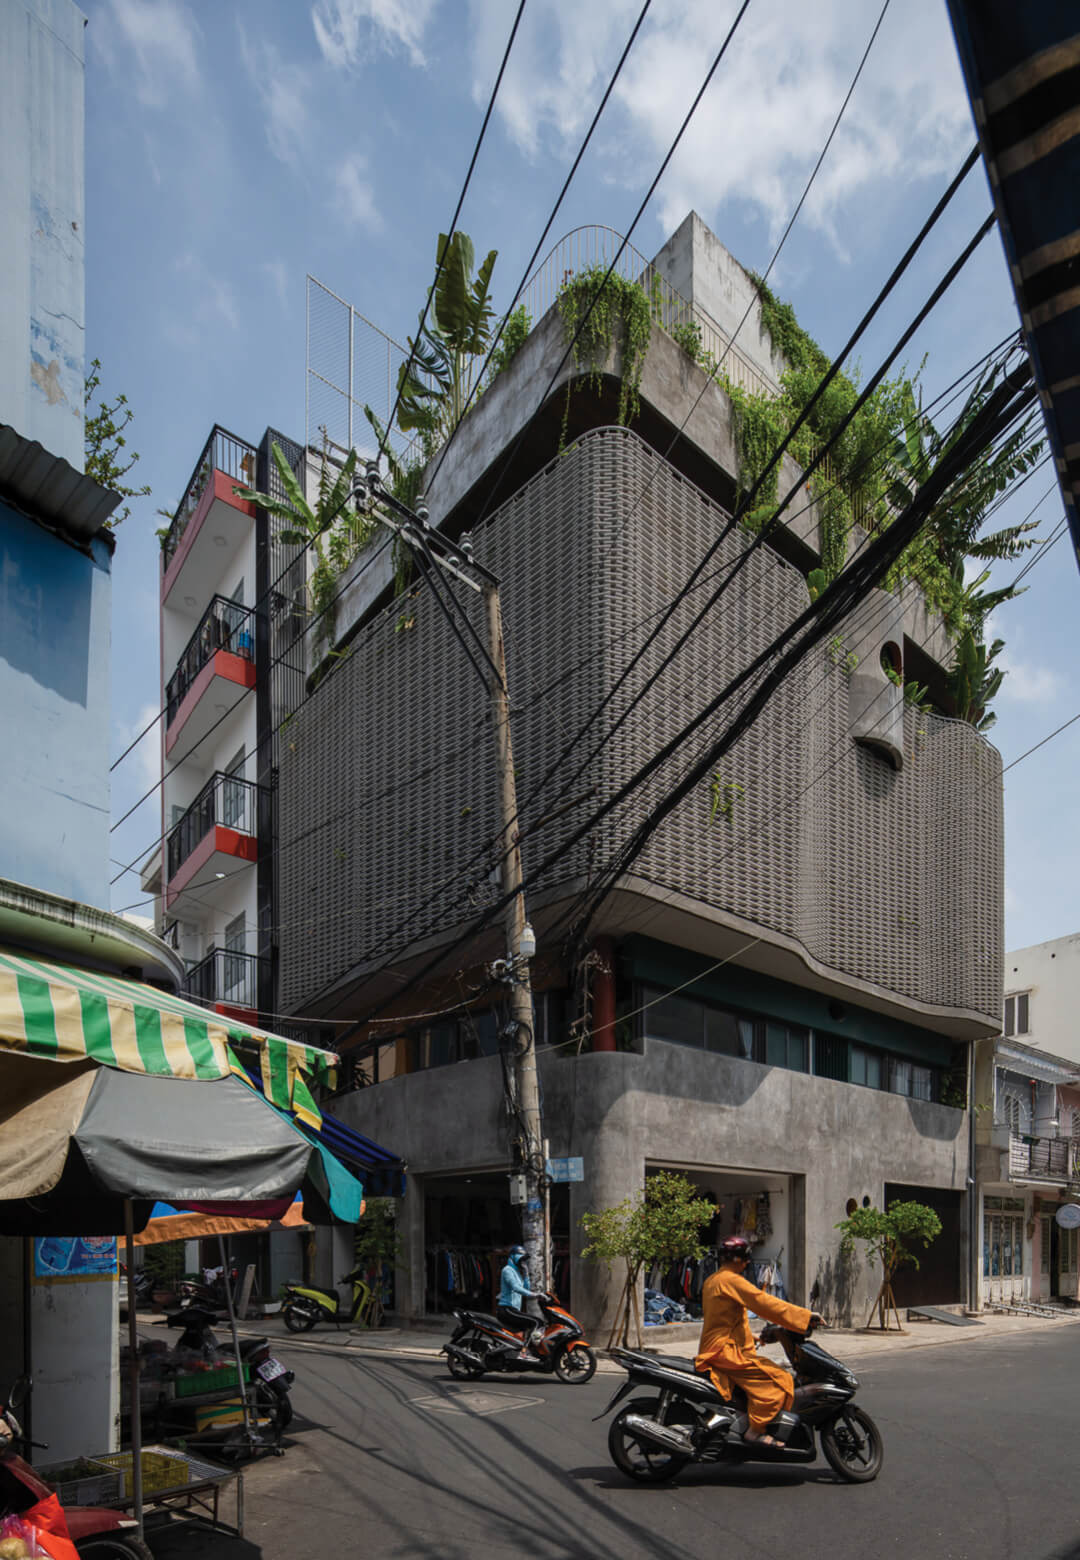 Hoa's House by H.2 Architects is a green haven framed within a latticed screen   Hoa's House   H.2 Architects   STIRworld